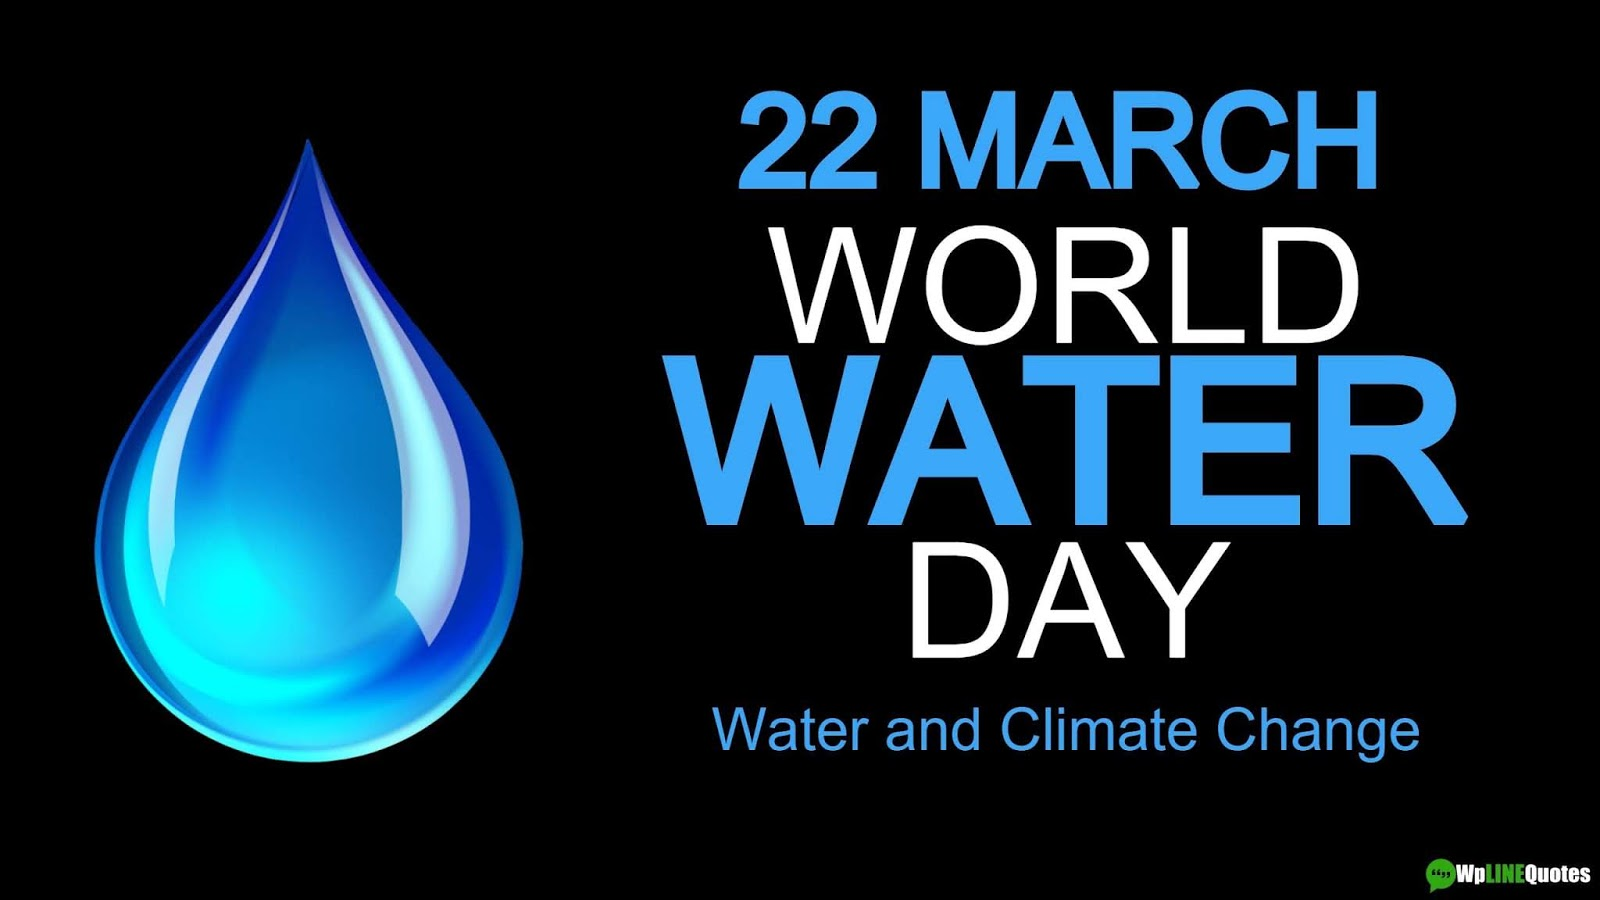 World Water Day Quotes, Wishes, Slogans, Messages, Theme, Activities, Images, Poster